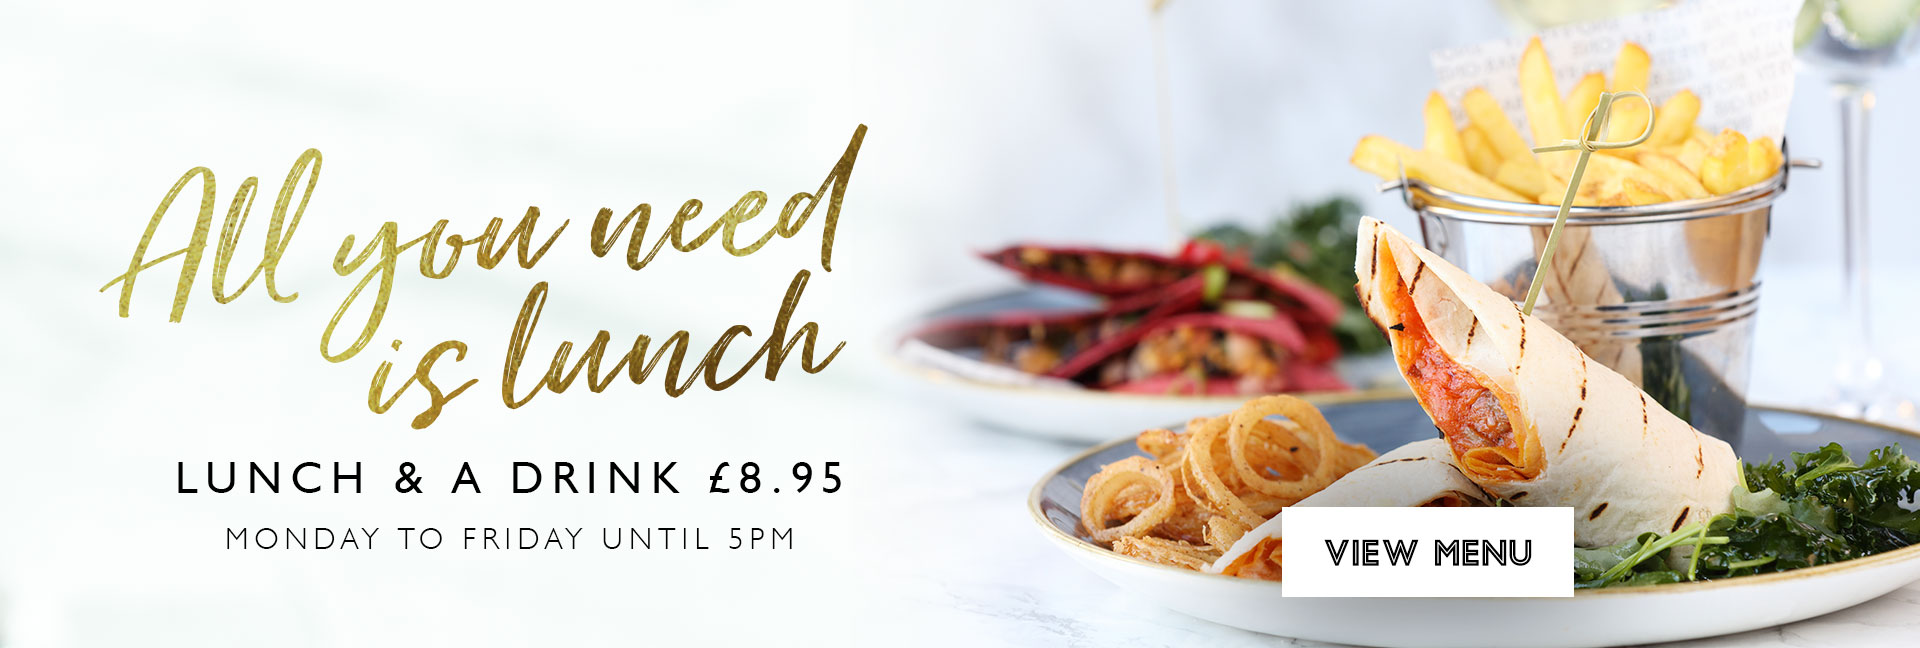 Lunch Offer at All Bar One Sheffield